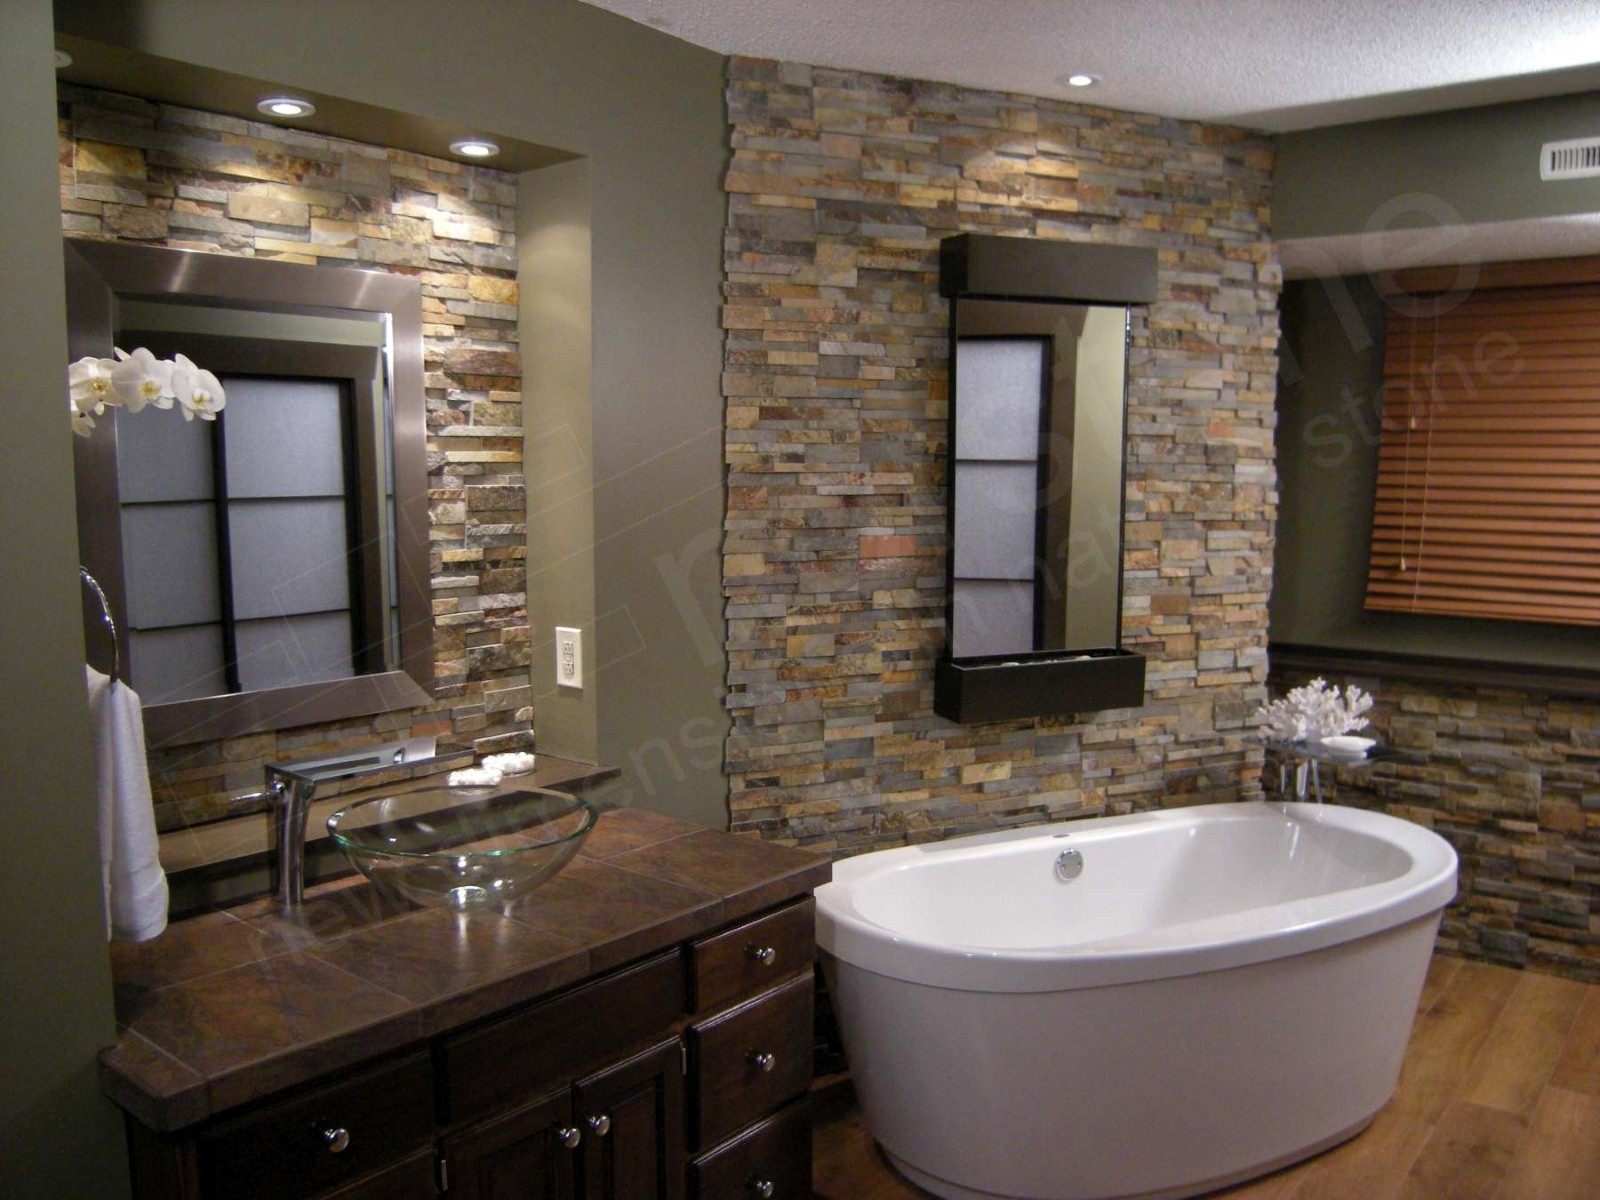 Home Depot Bathroom Designs | HomesFeed